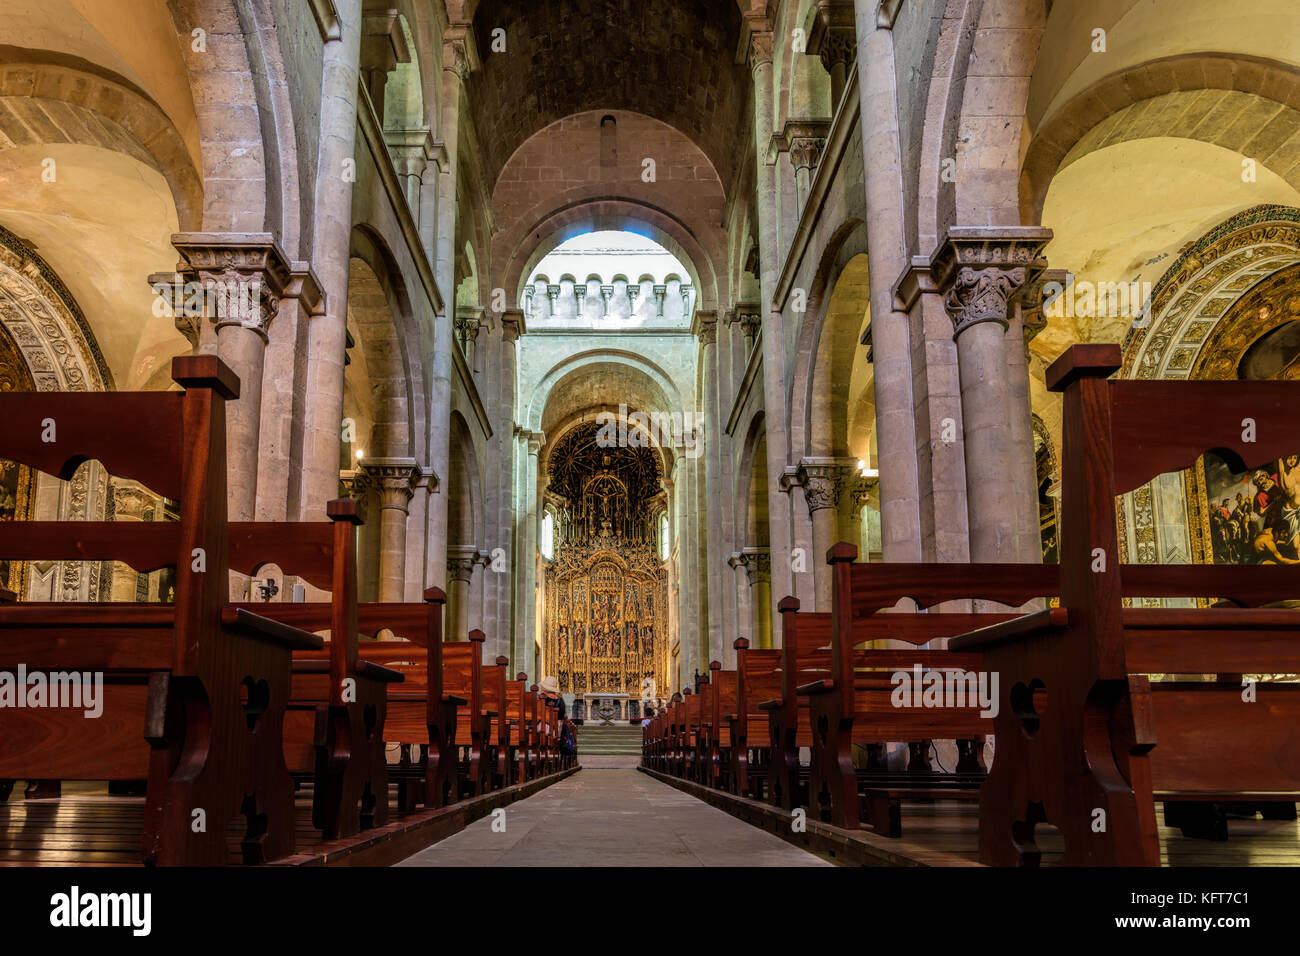 Interior of the Old Cathedral of Coimbra, a.k.a. Se Velha, a Romanesque Roman Catholic building, started in 12th - Stock Image